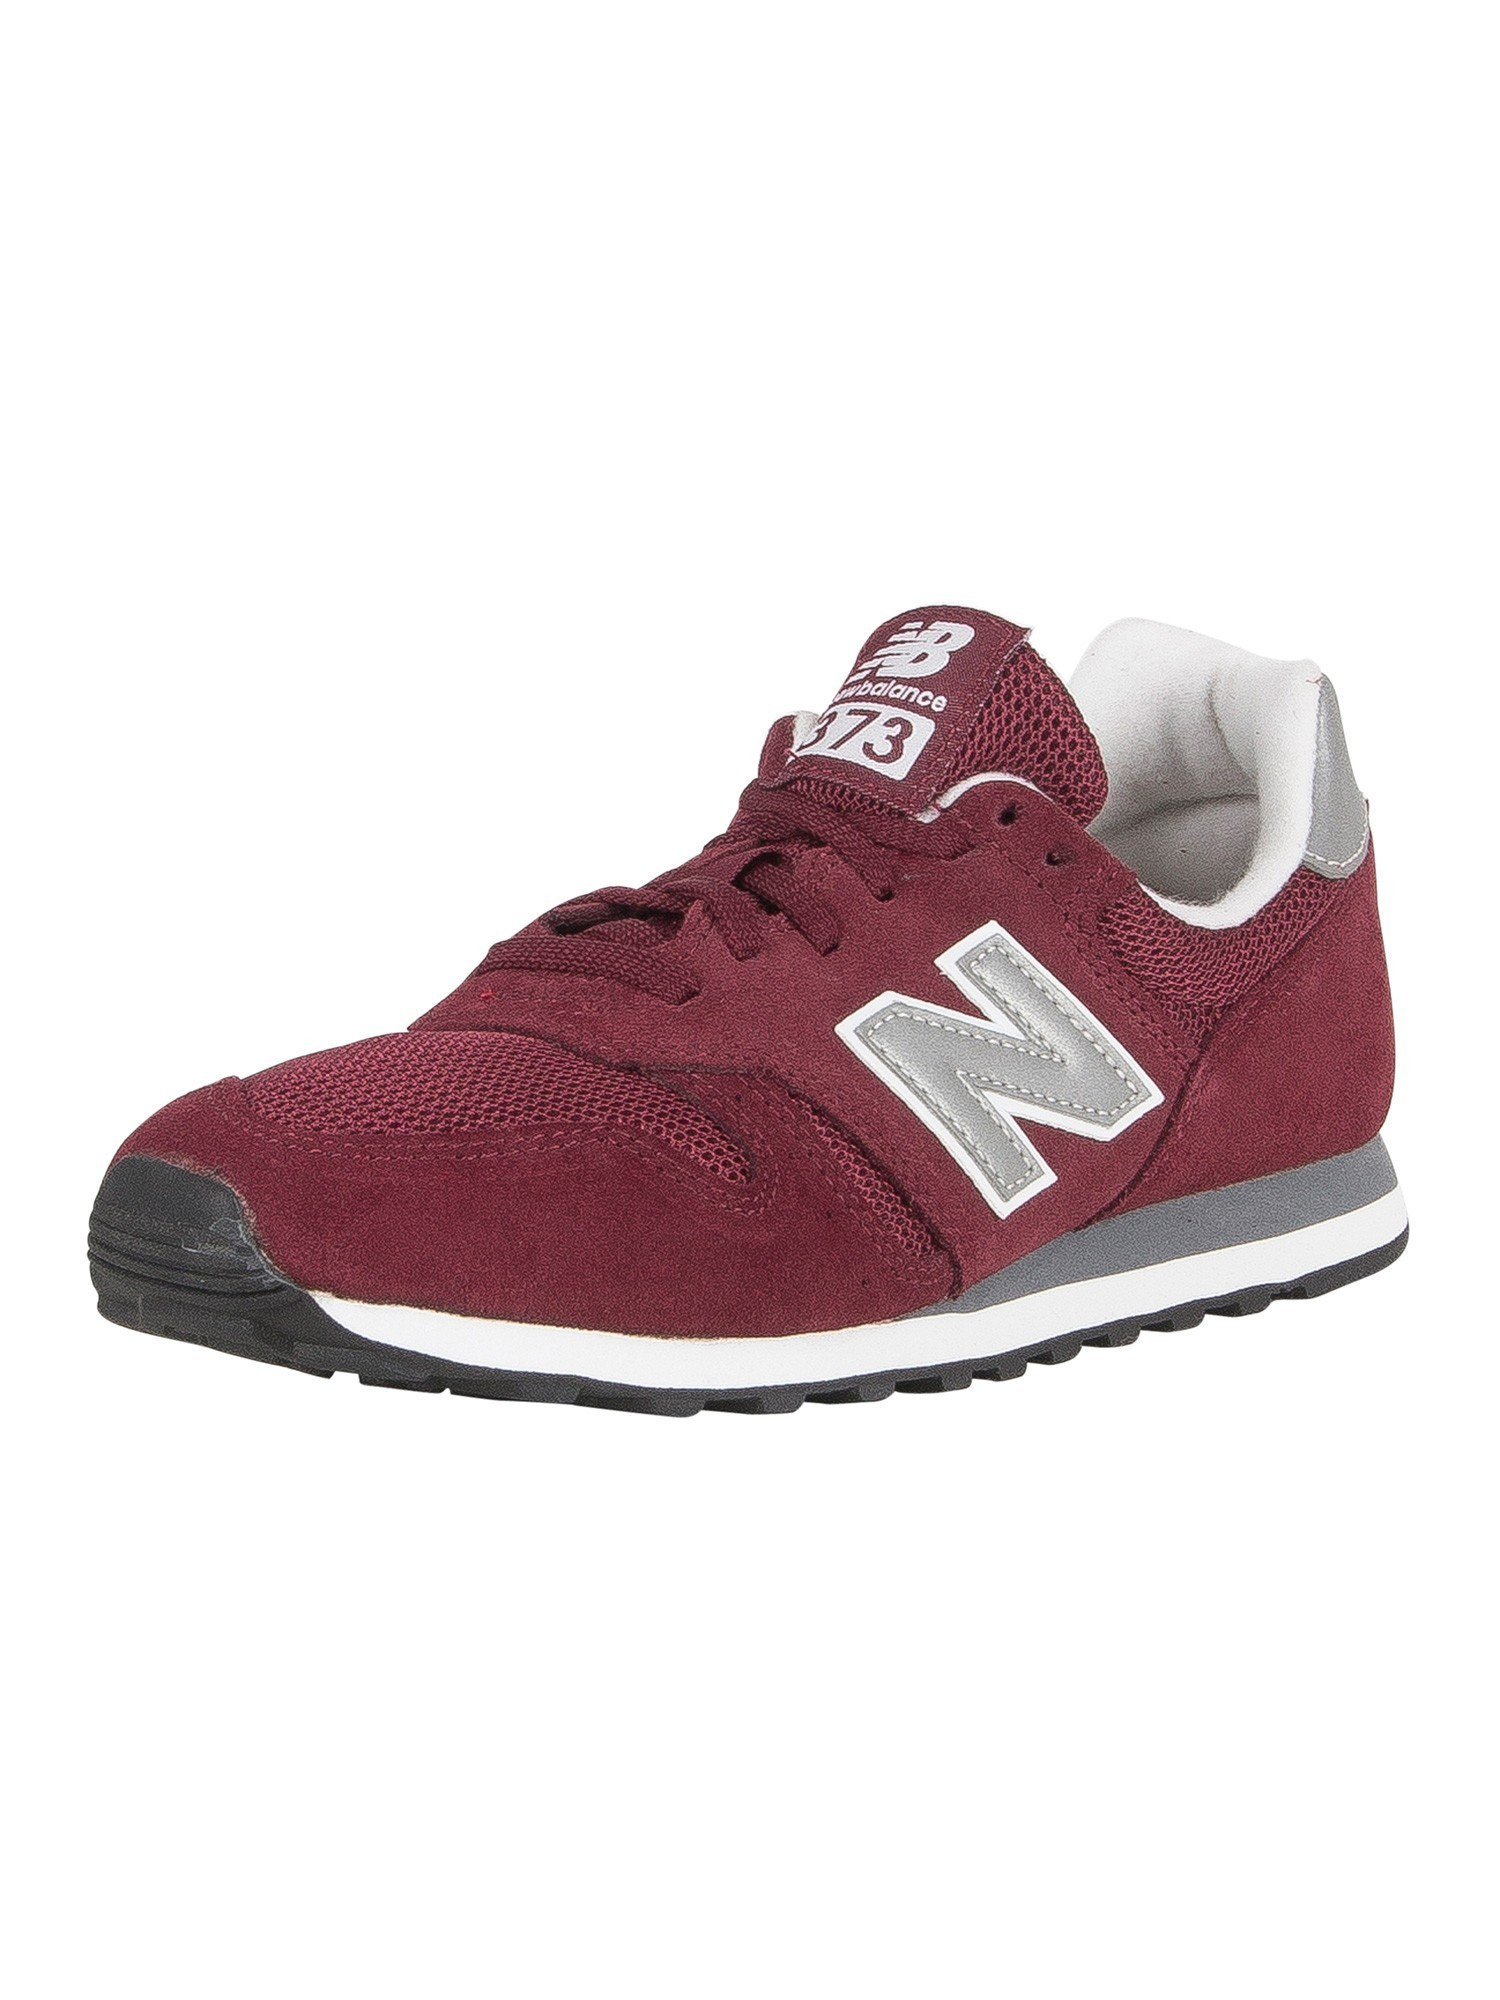 online store 0b4d6 65c5e New Balance 373 Suede Trainers - Burgundy/Silver